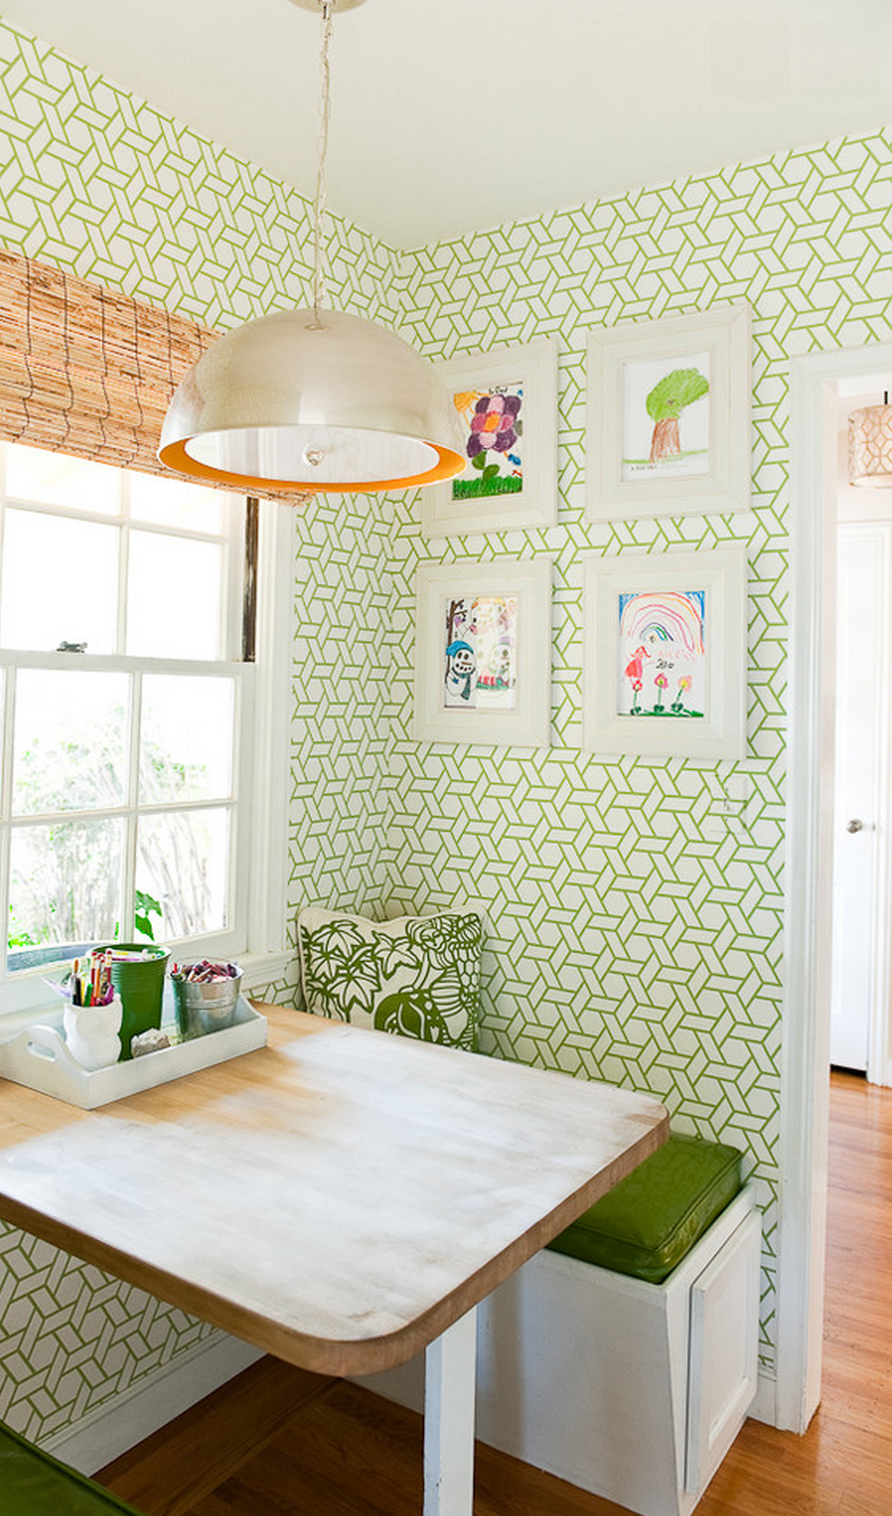 50 Stunning Breakfast Nook Ideas You Have to See Nooks och